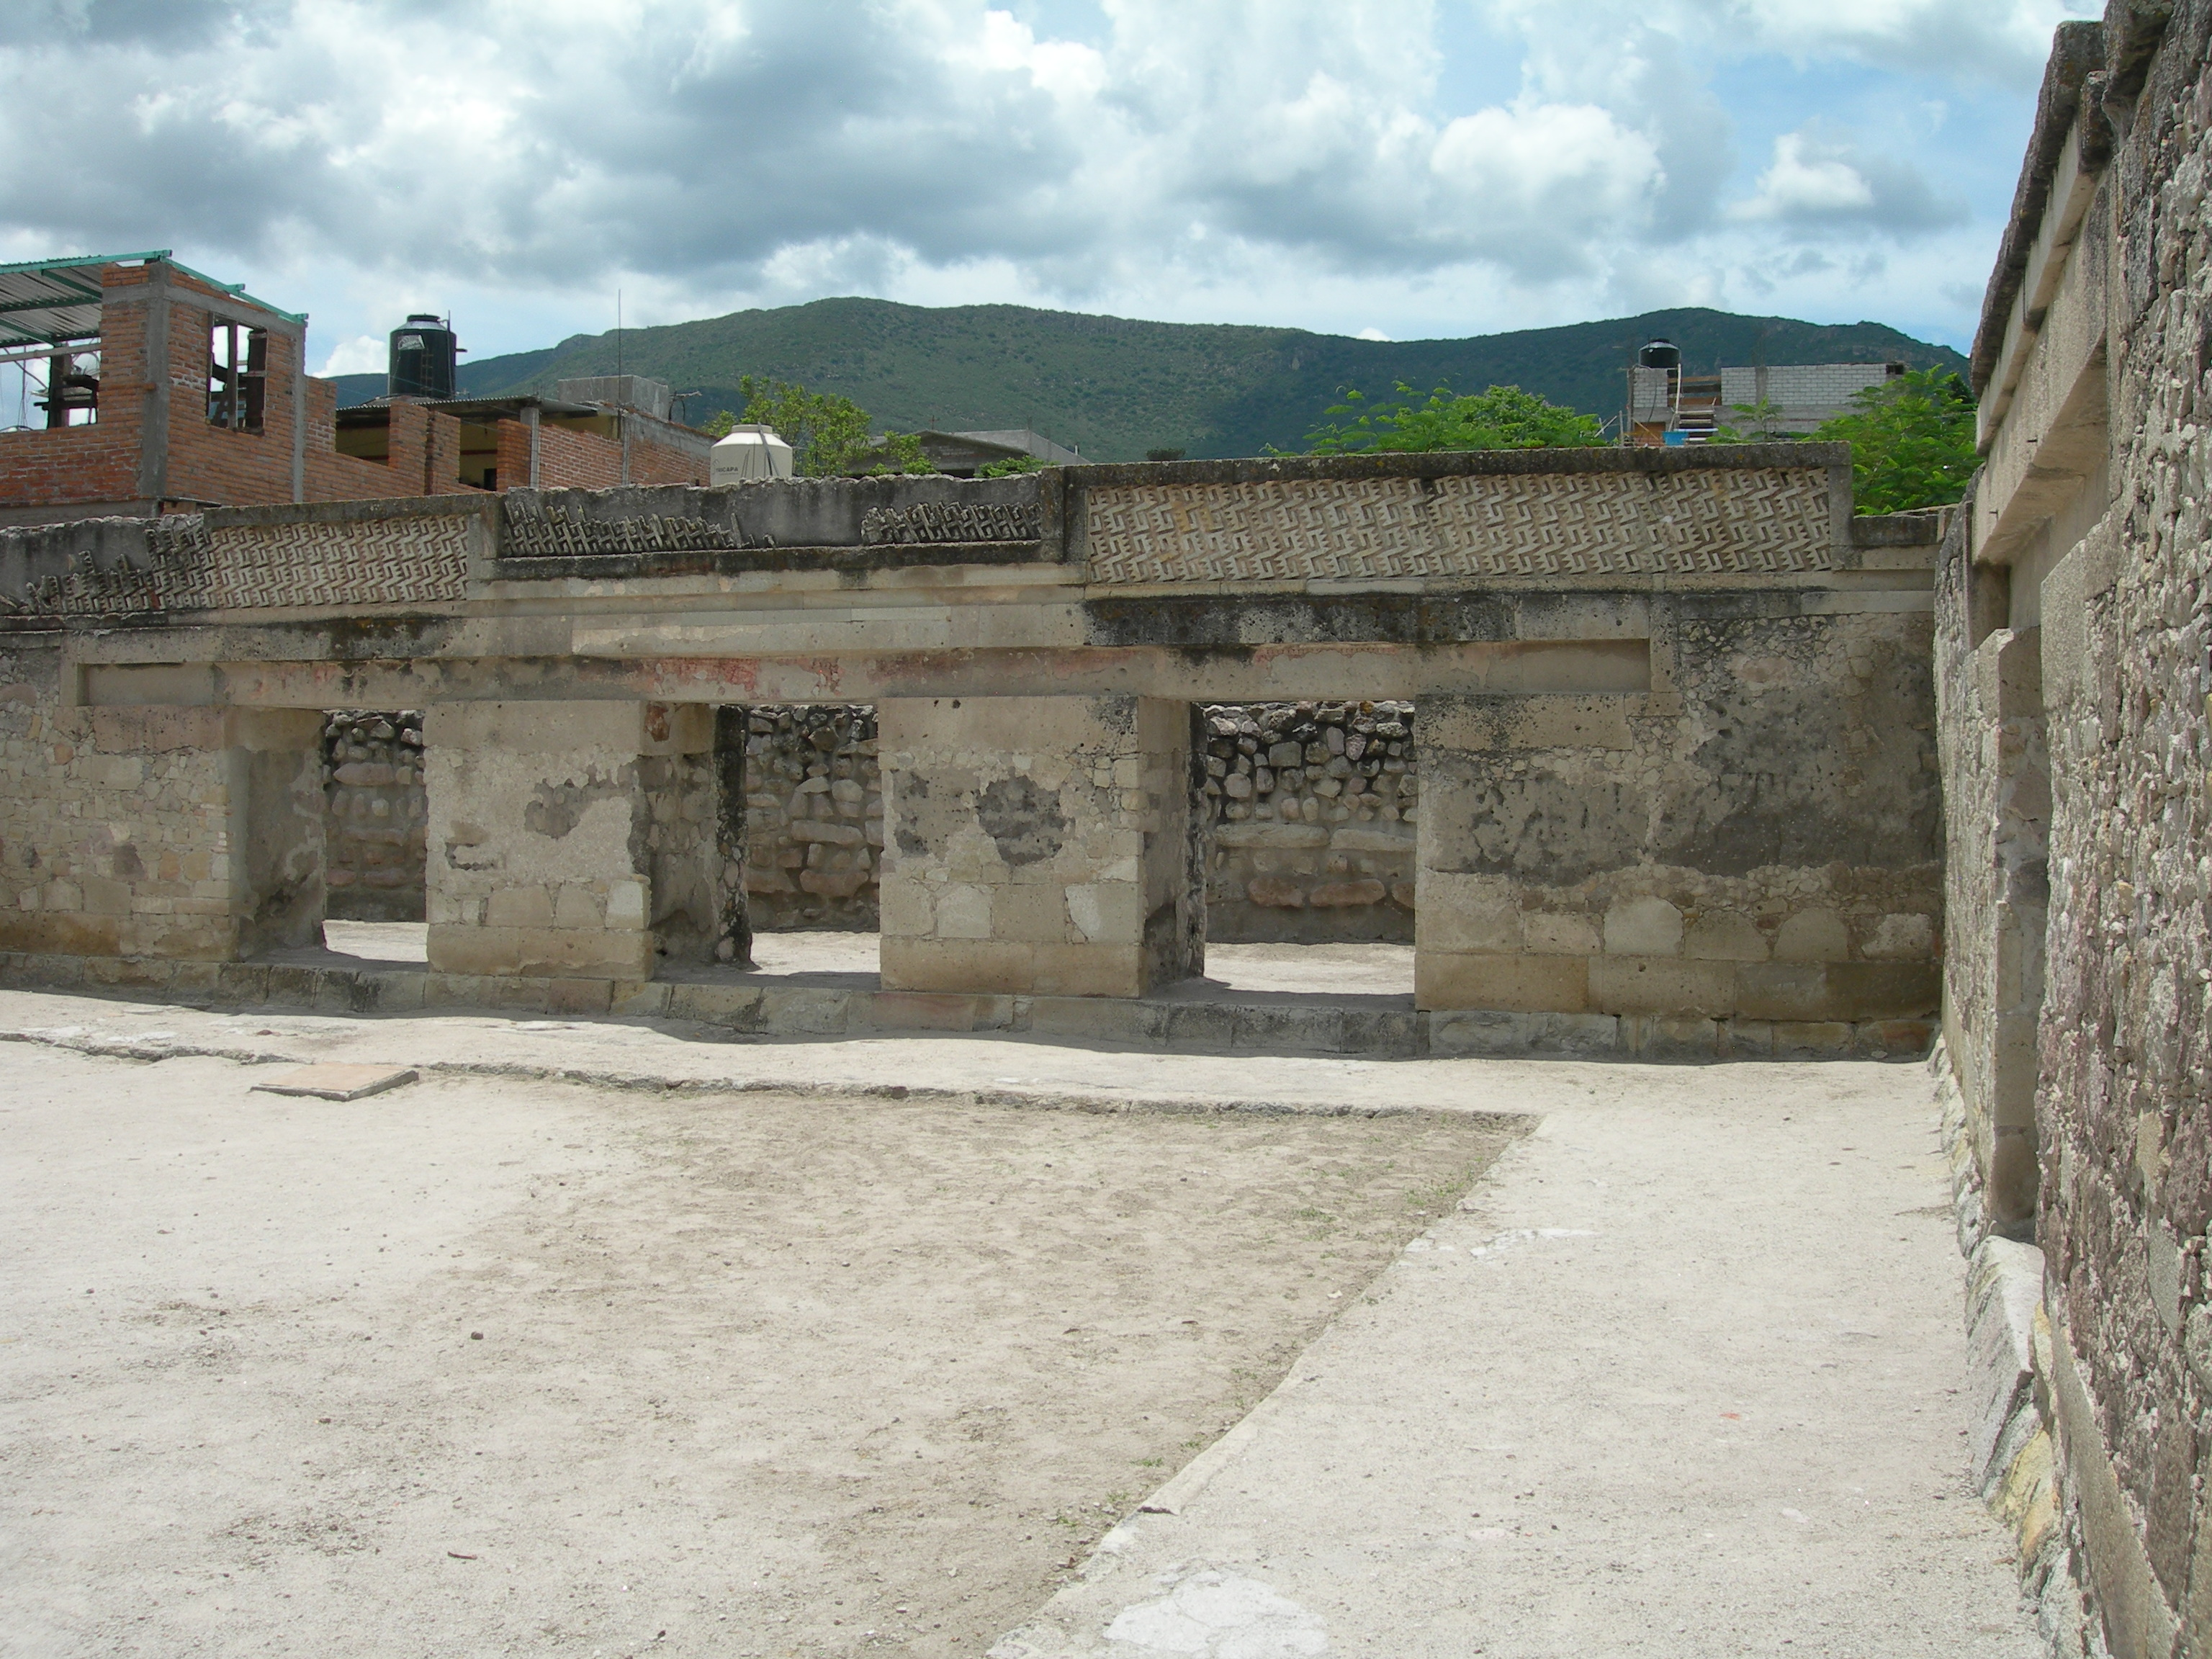 FIGURE 15. One of the palaces in the Church group at Mitla in the Valley of Oaxaca. On the flat indented panel above the doorways you can see the remains of red and white mural paintings. These long narrow bands of flowing images have much in common with the visual layout of an unfolded screenfold book. Photograph by Byron Hamann, June 2011.